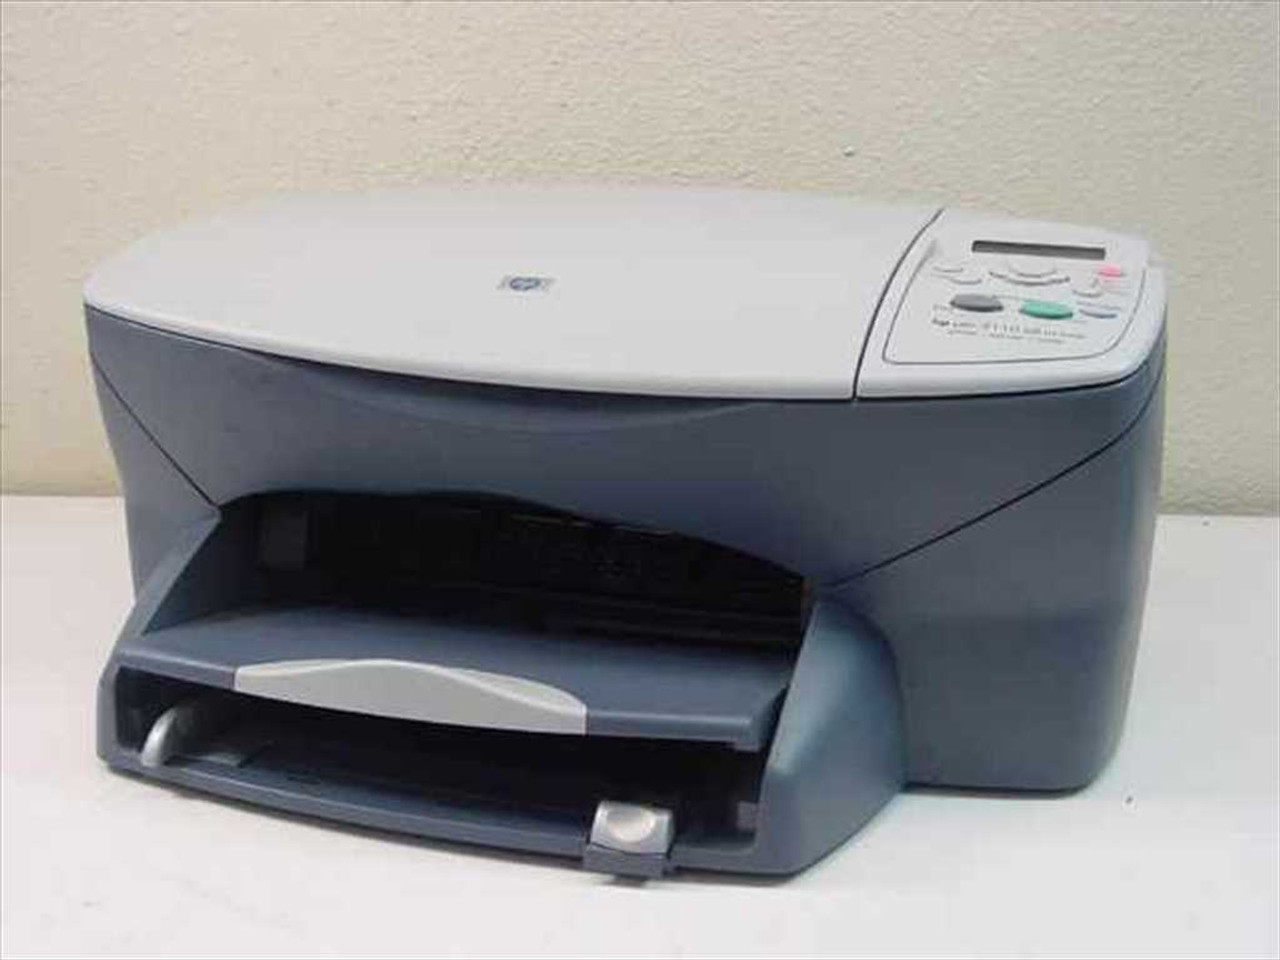 HP PSC 2110 ALL-IN-ONE PRINTER DRIVERS FOR MAC DOWNLOAD